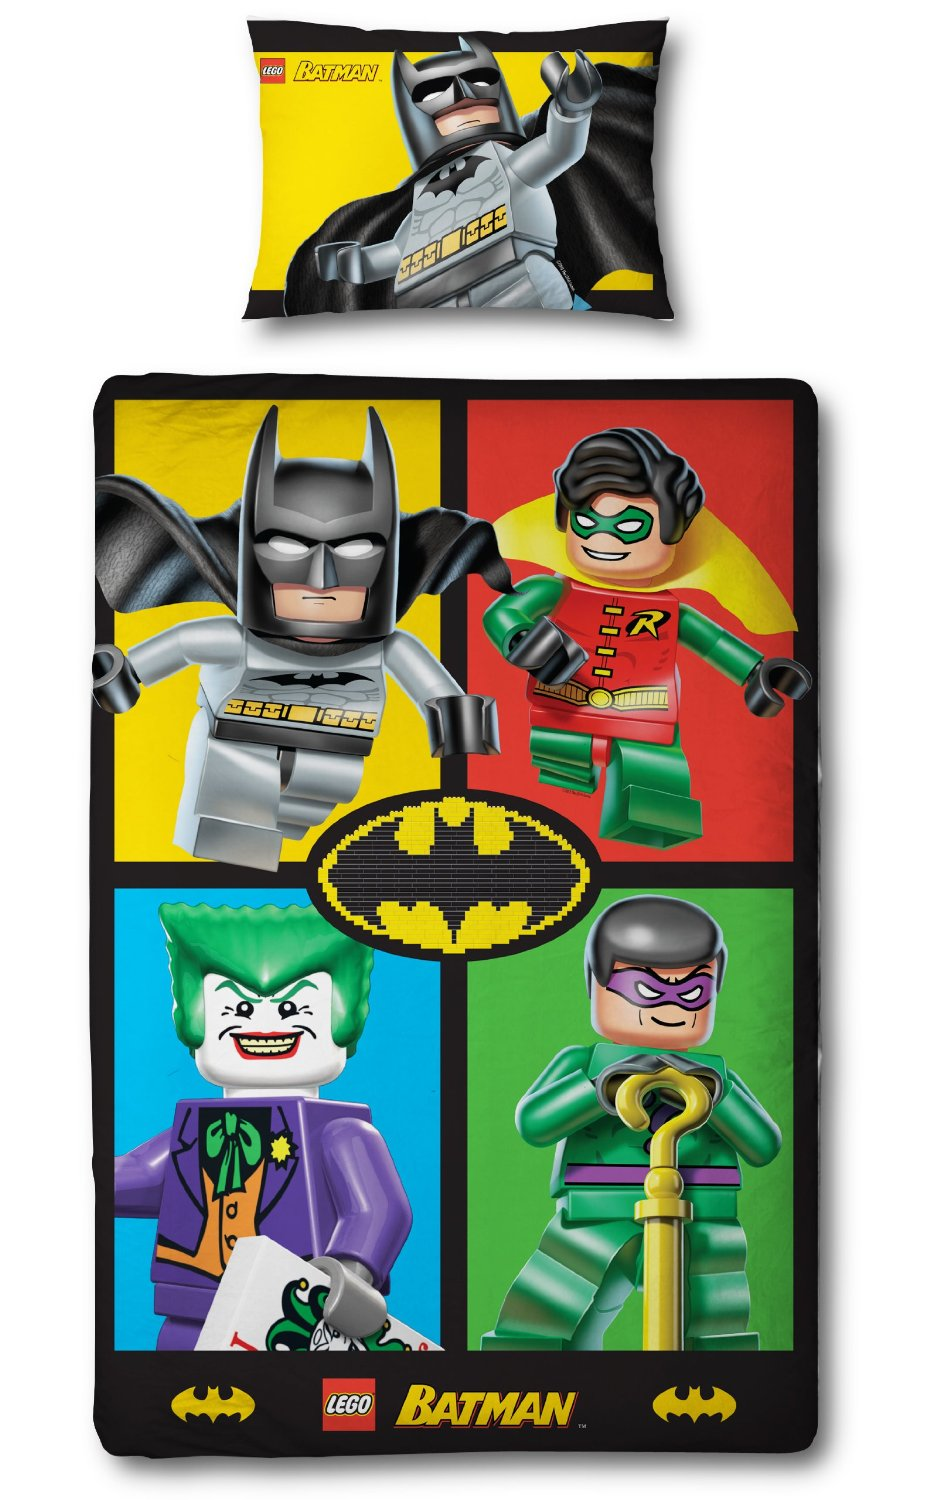 Lego Batman Bedding Cool Stuff To Buy And Collect